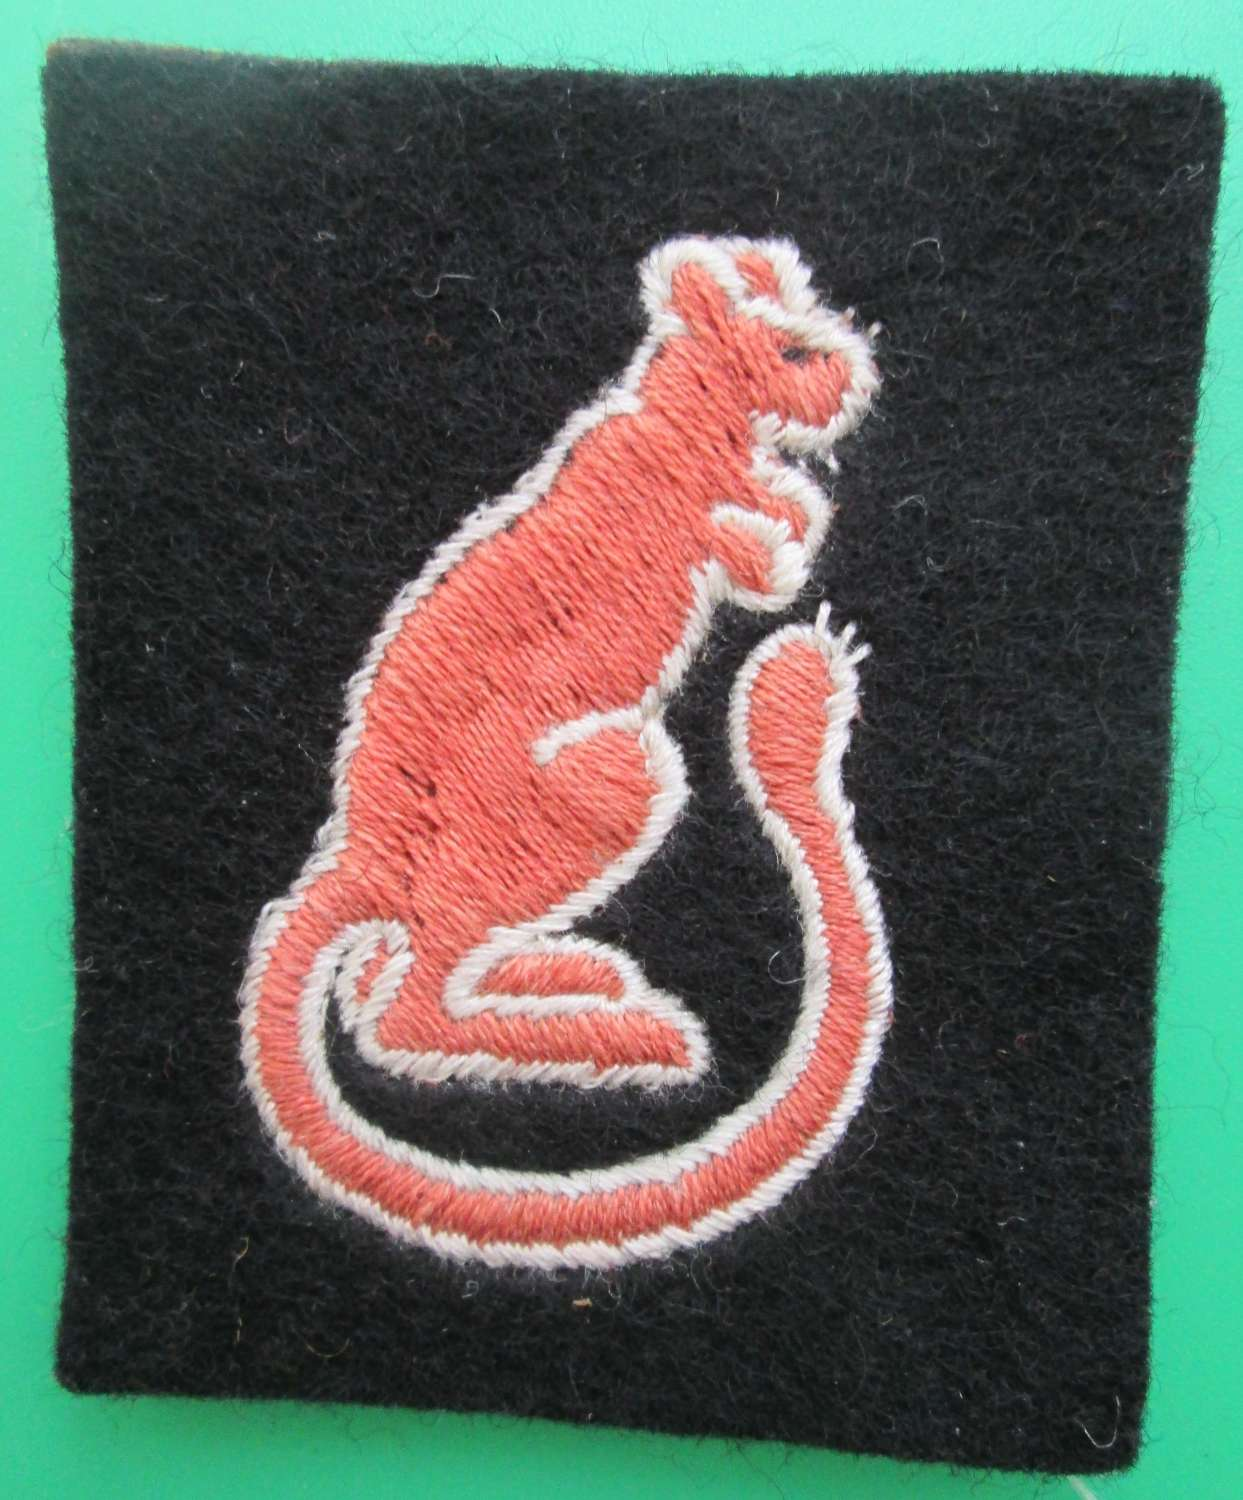 A 7TH ARMOURED DIVISION FORMATION SIGN